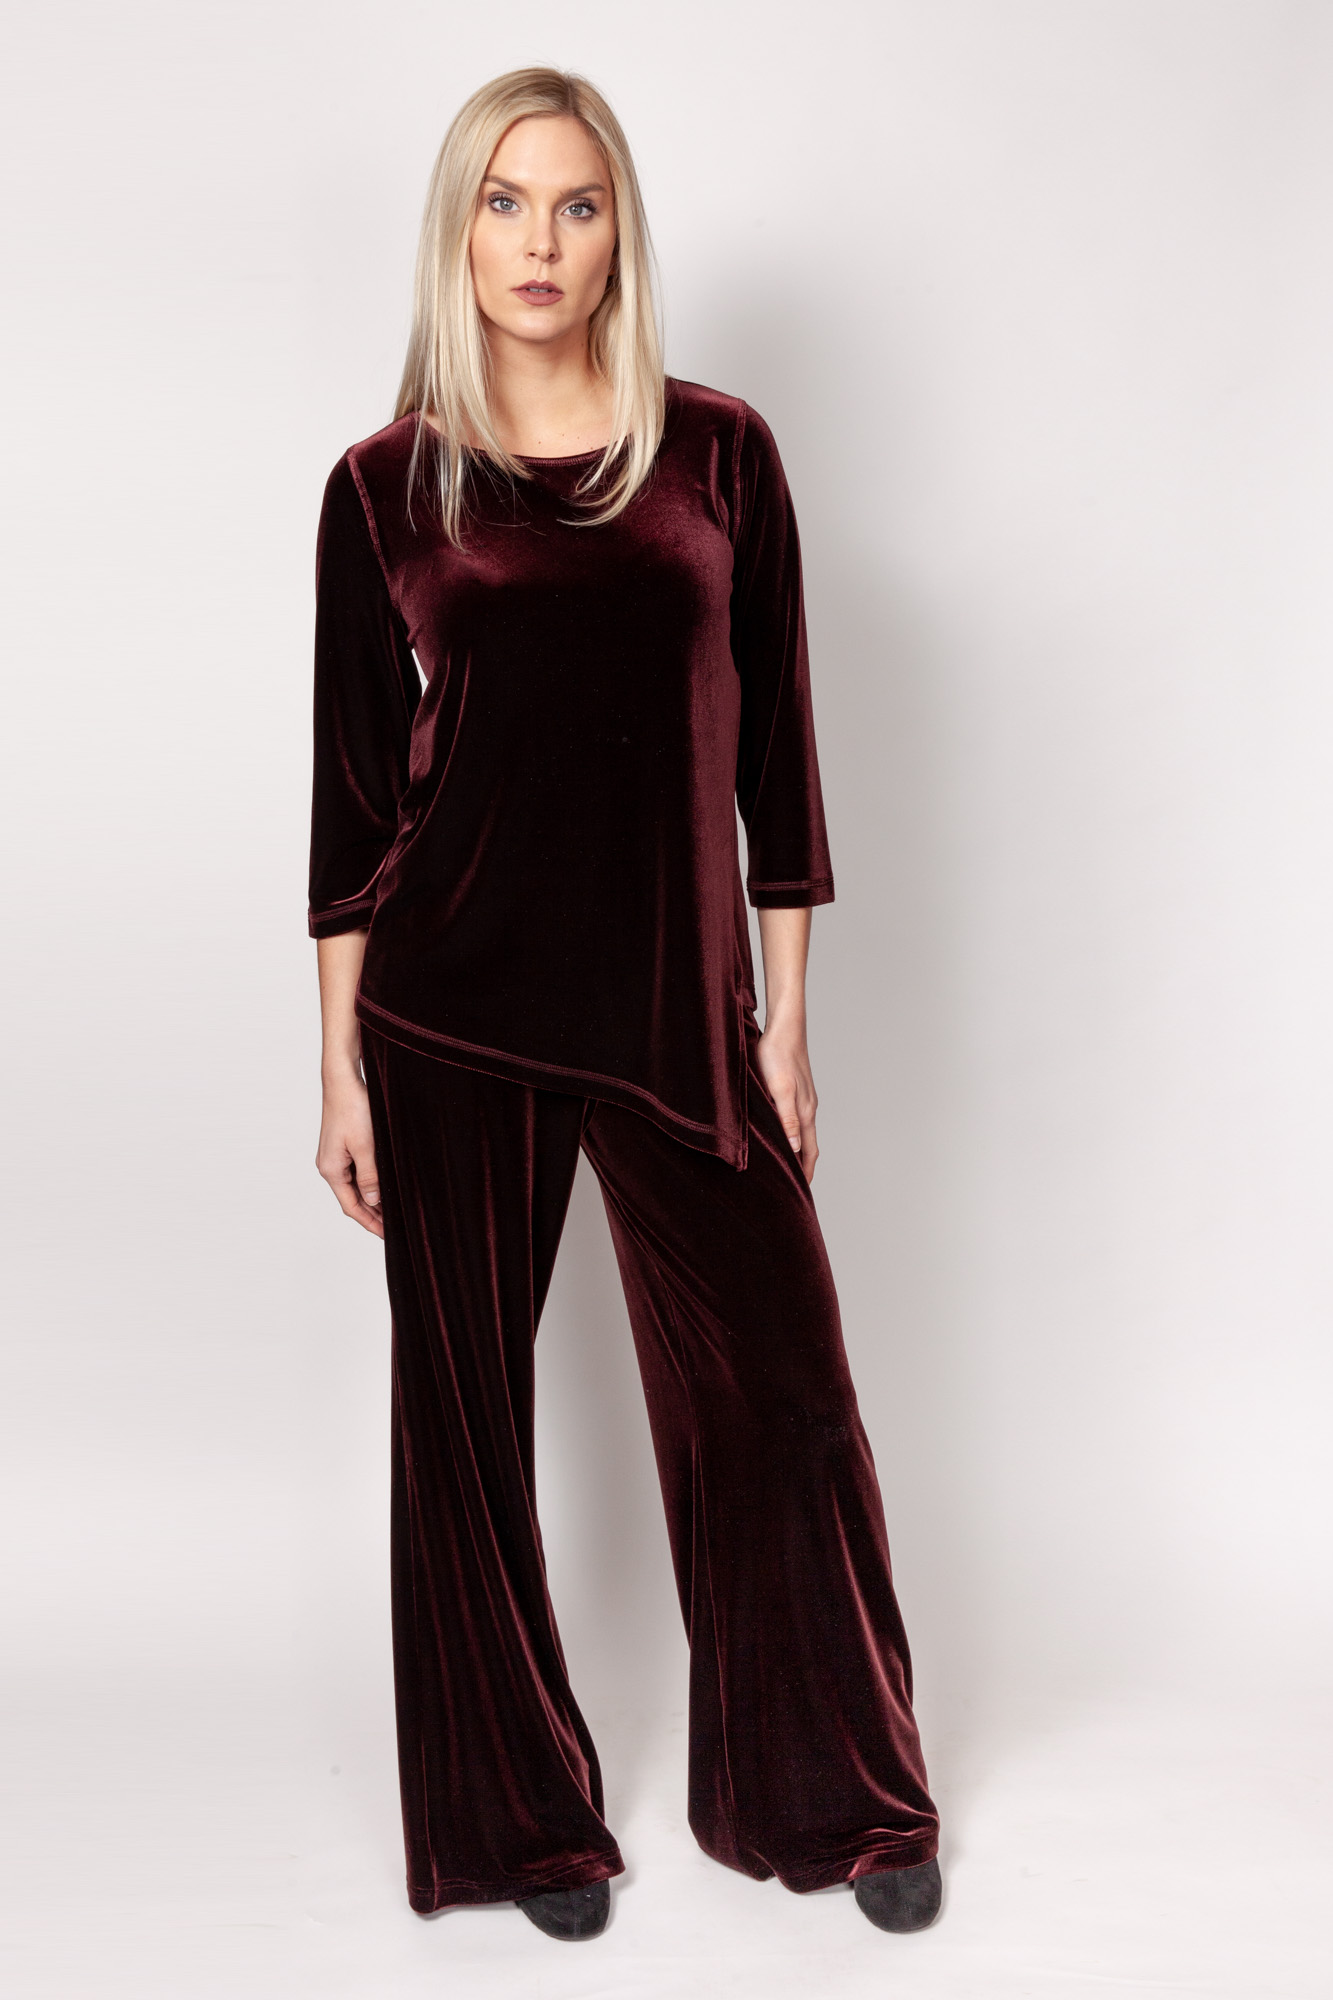 Copy of Style # 11503-19, p15 <br/>Pant 11500-19 <br/>PlushTech Velvet <br/>Colors: Raisin + 6 others